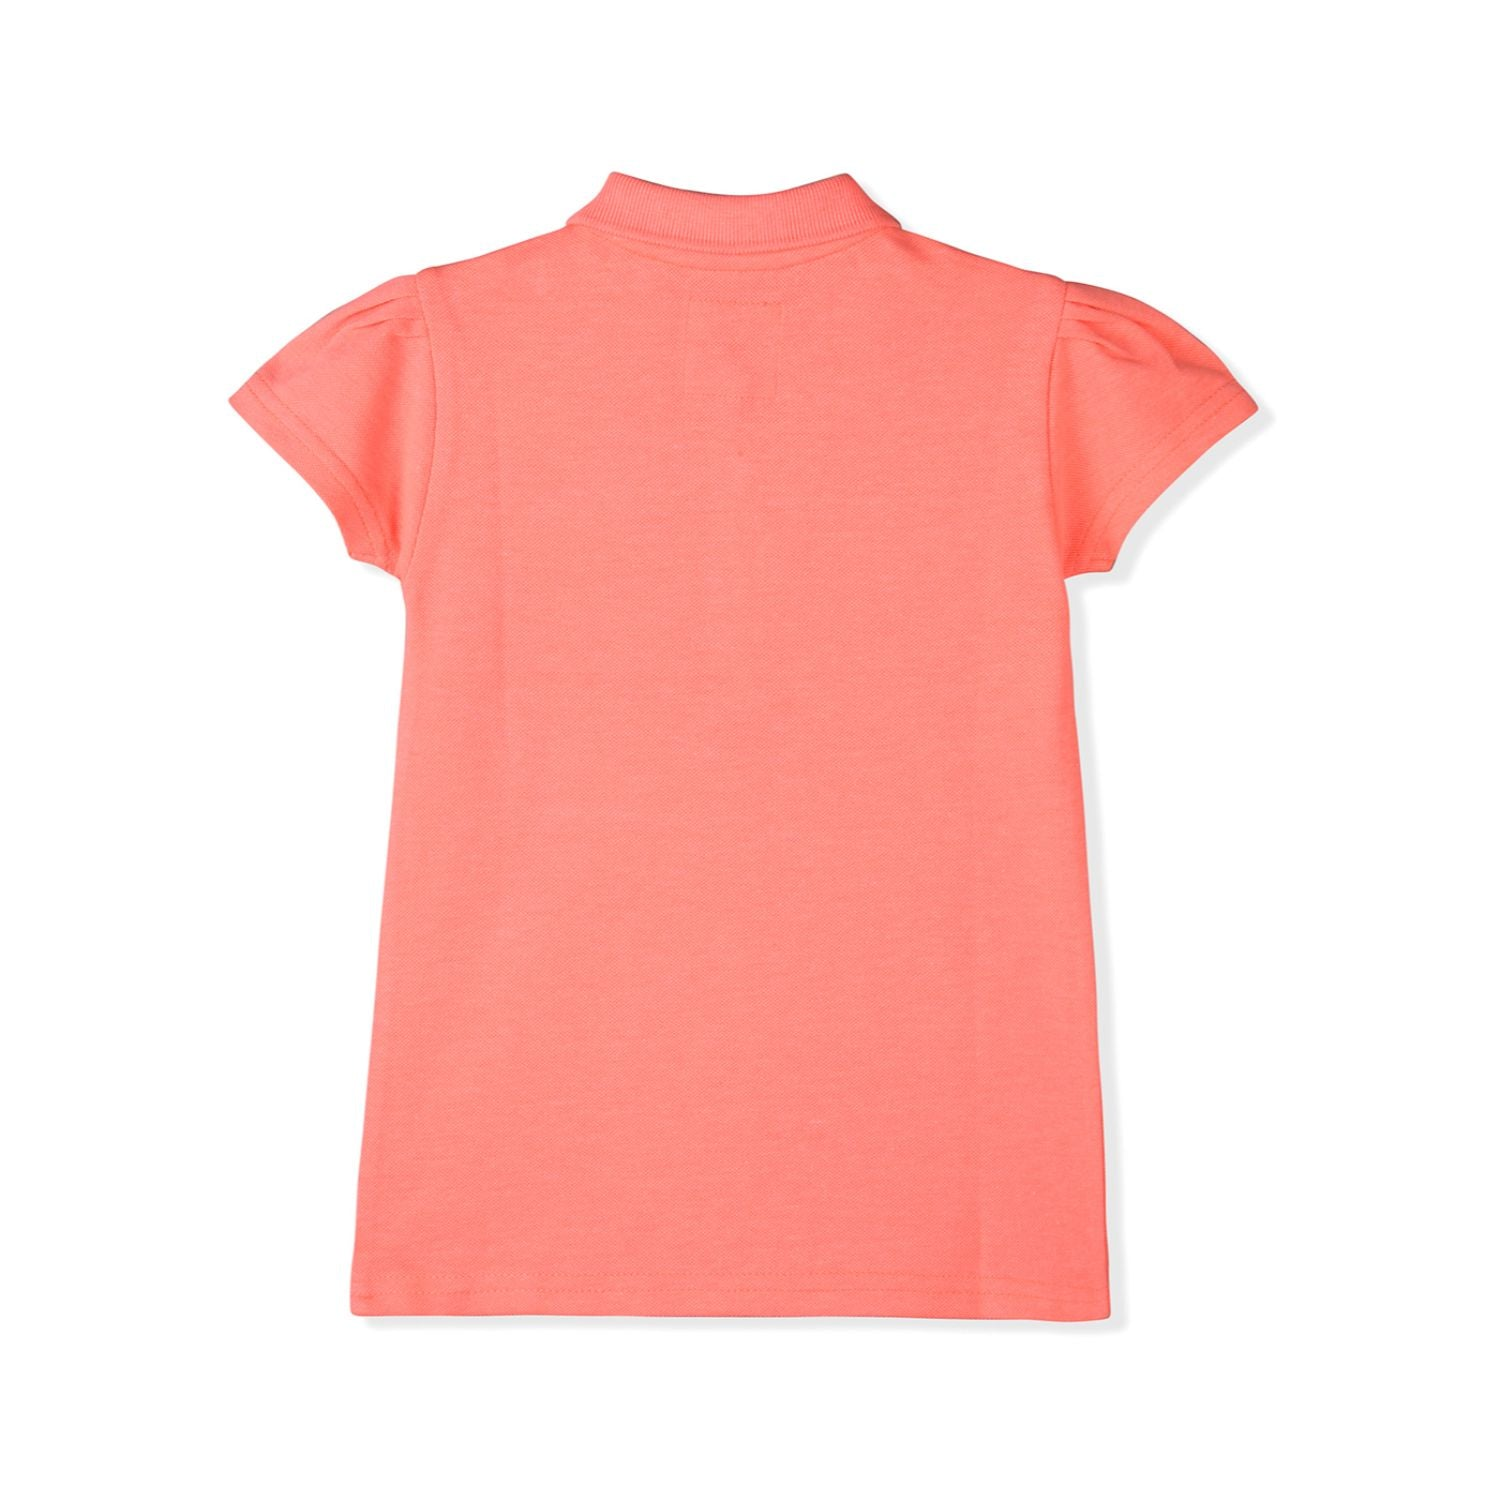 Grand Polo Shirt for Girls